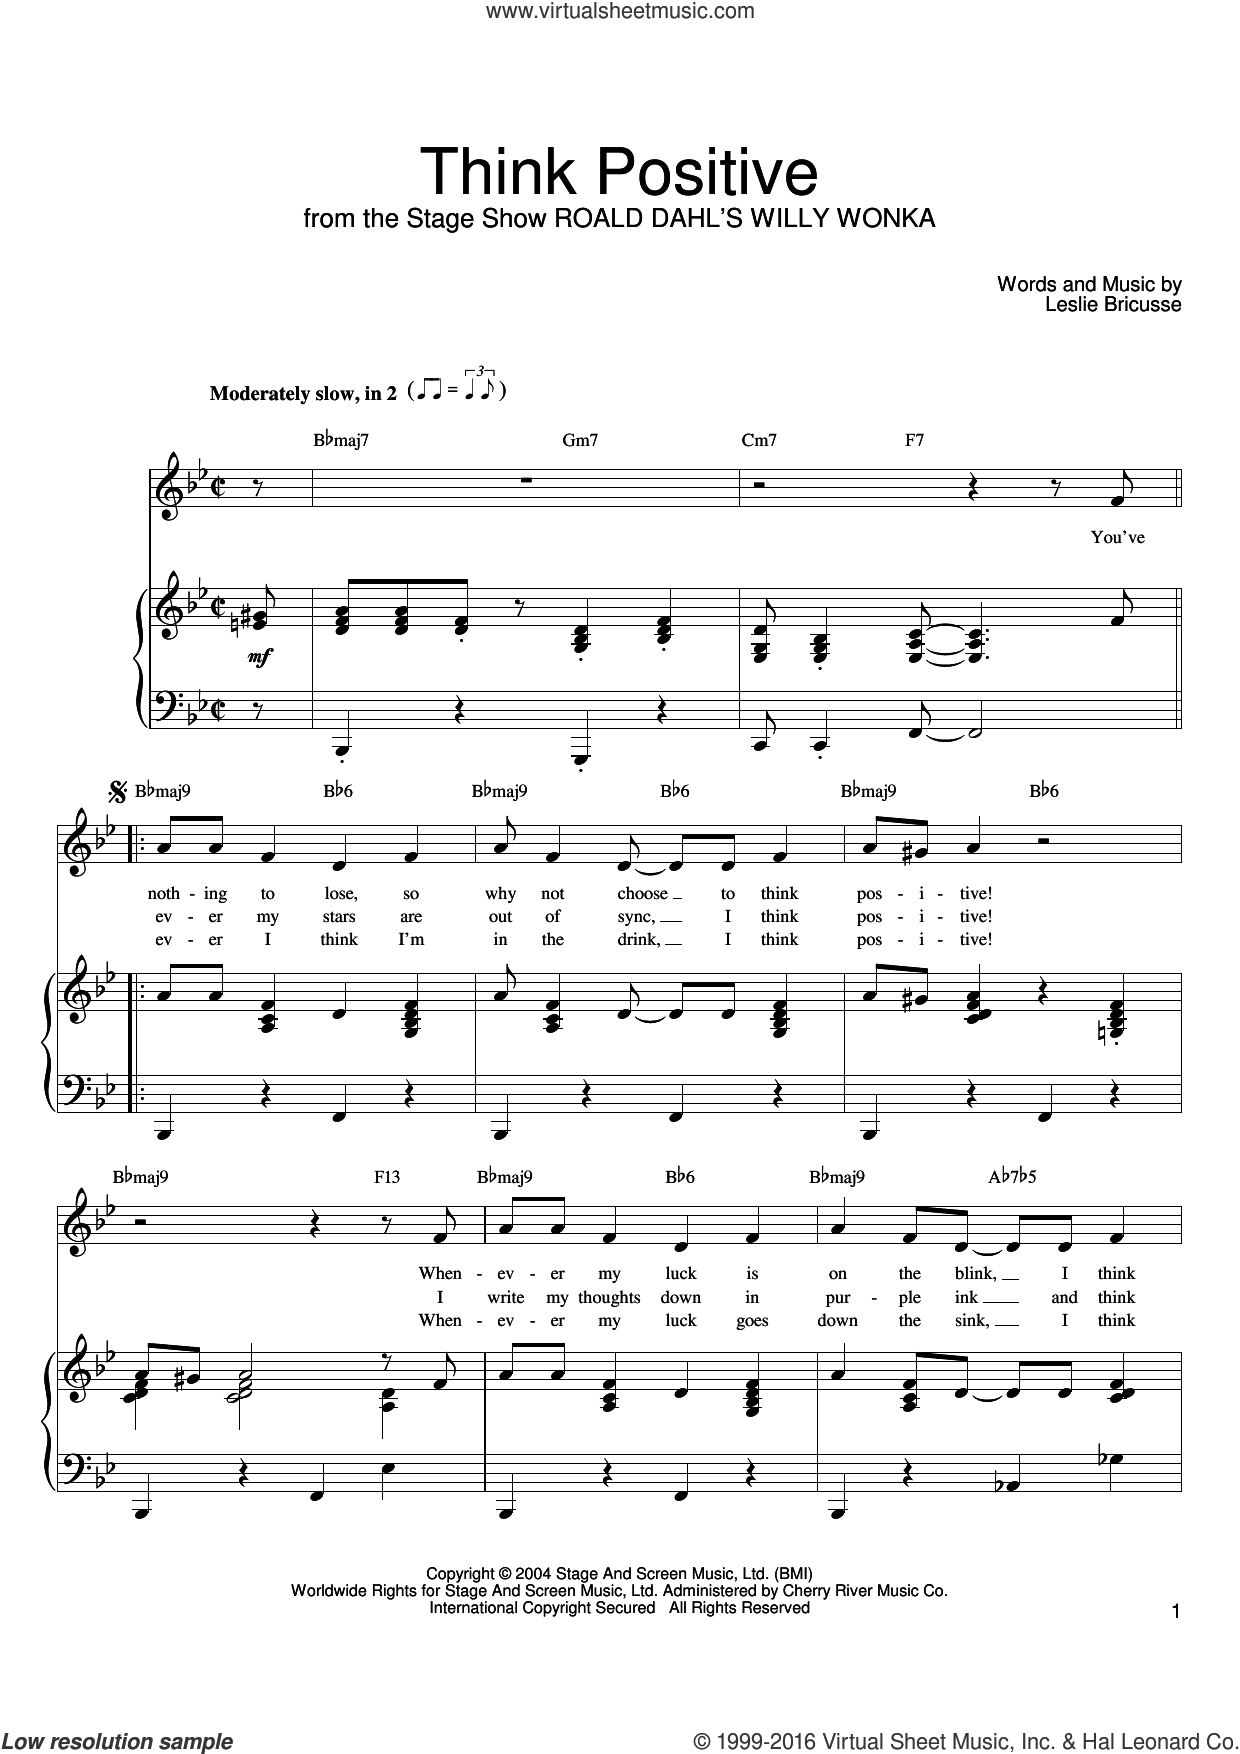 Think Positive sheet music for voice, piano or guitar by Leslie Bricusse, intermediate skill level